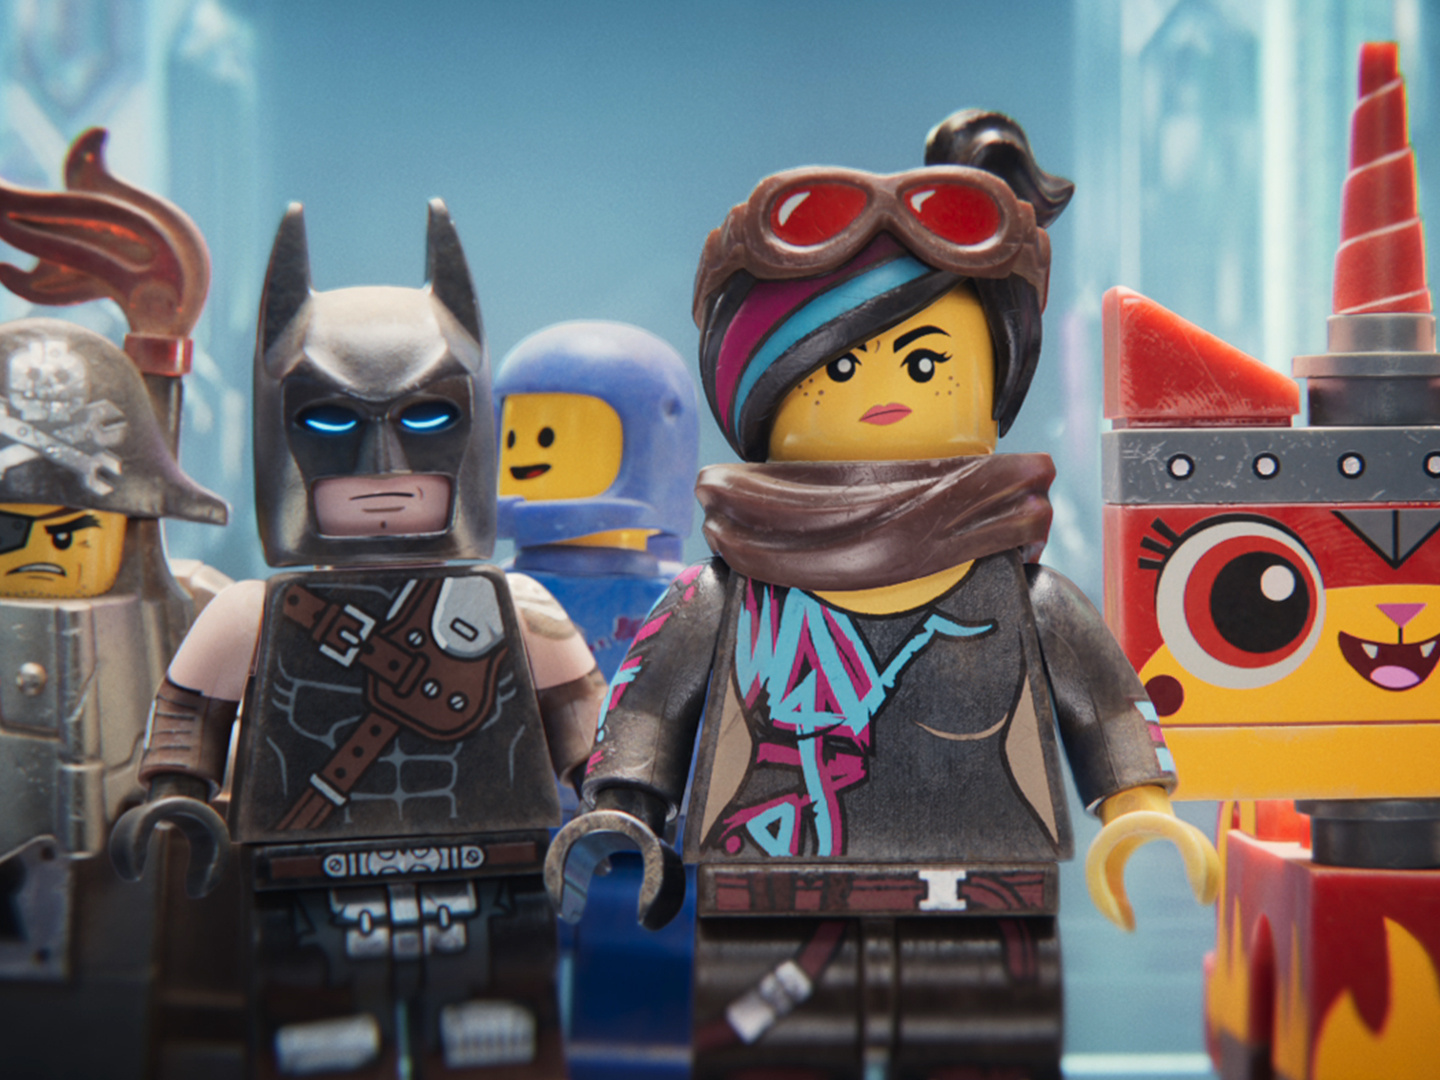 The Lego Movie 2: The Second Part,